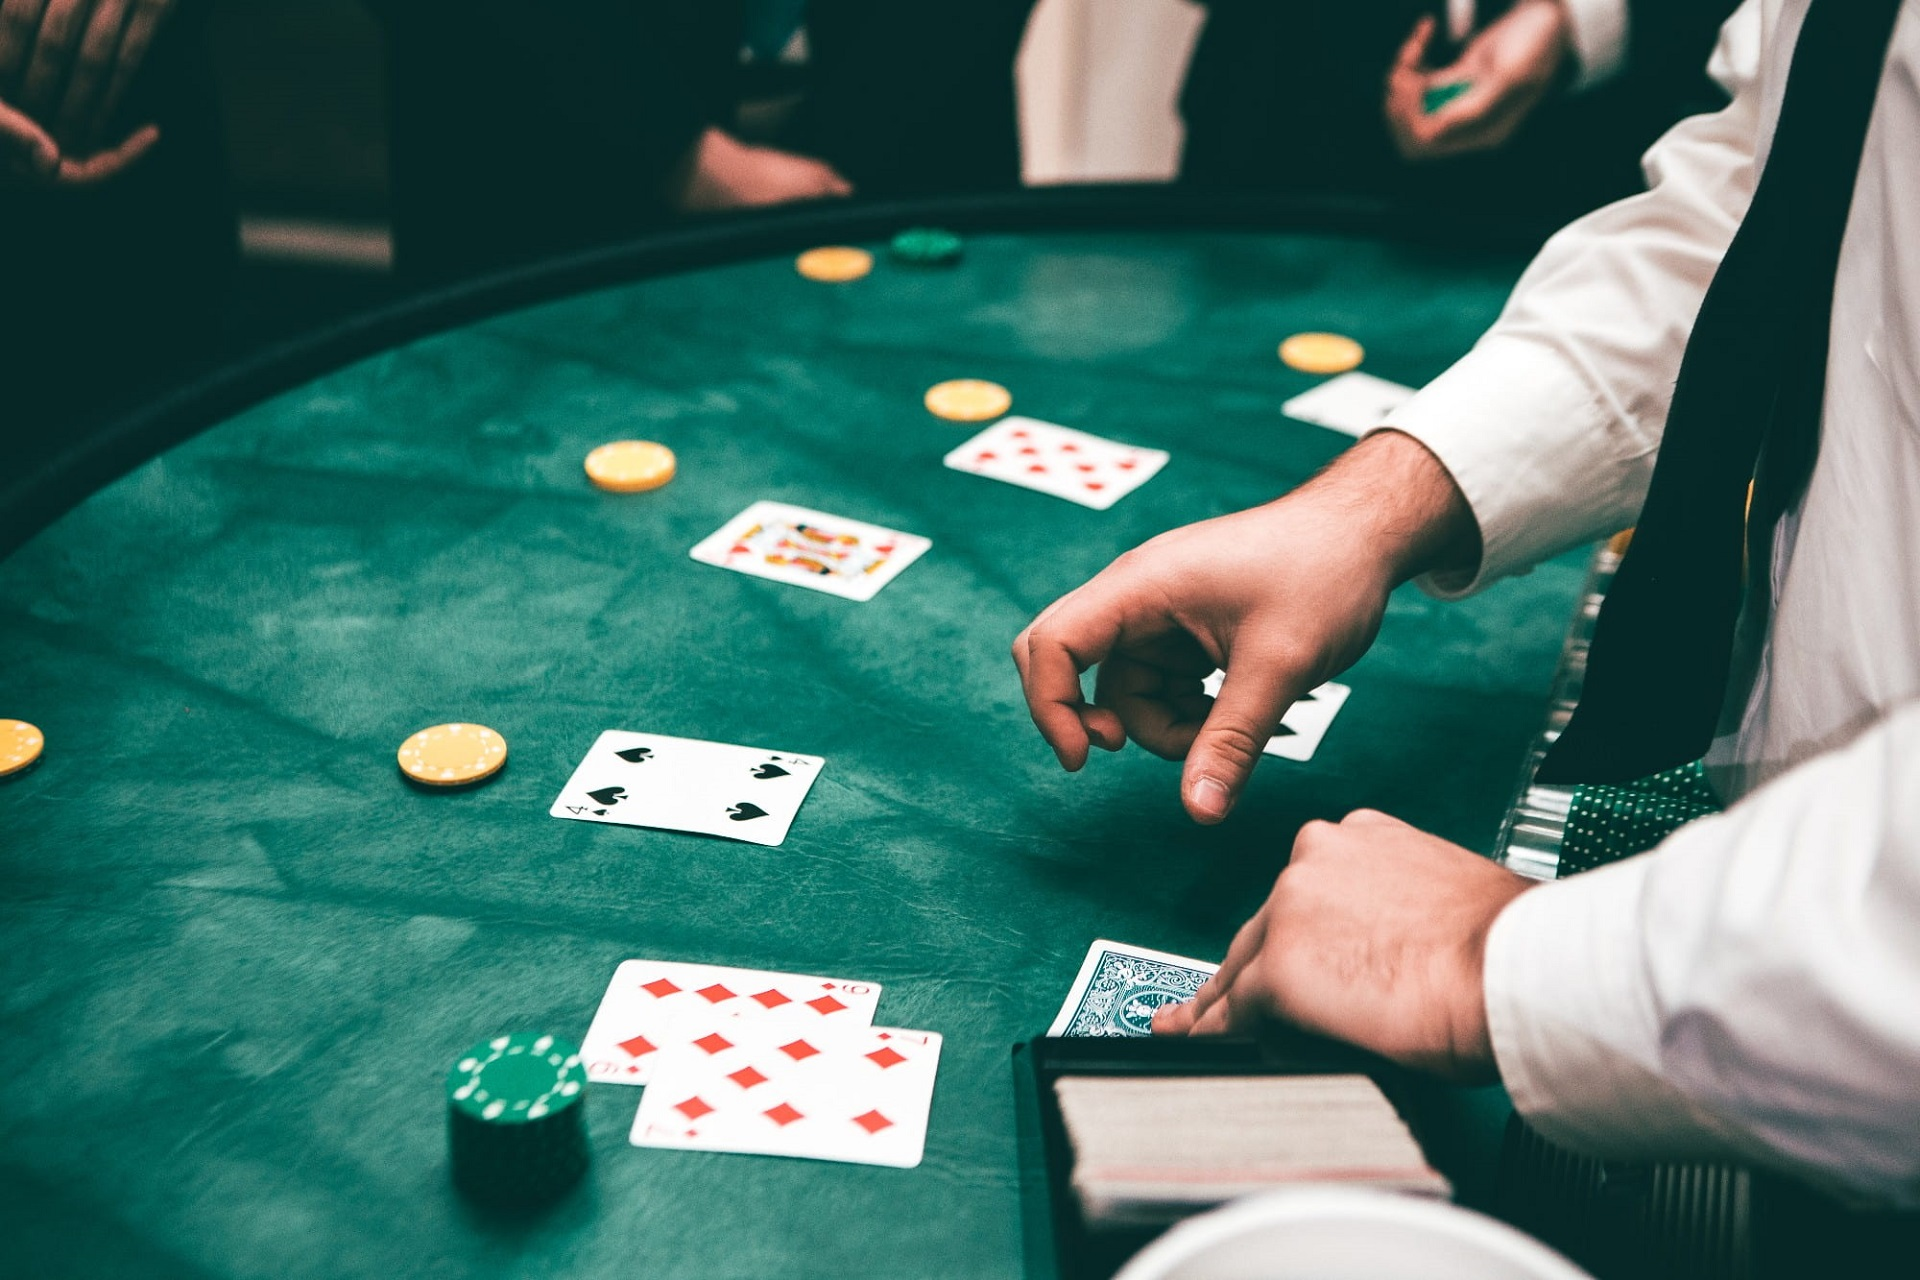 How To Gamble With Caution